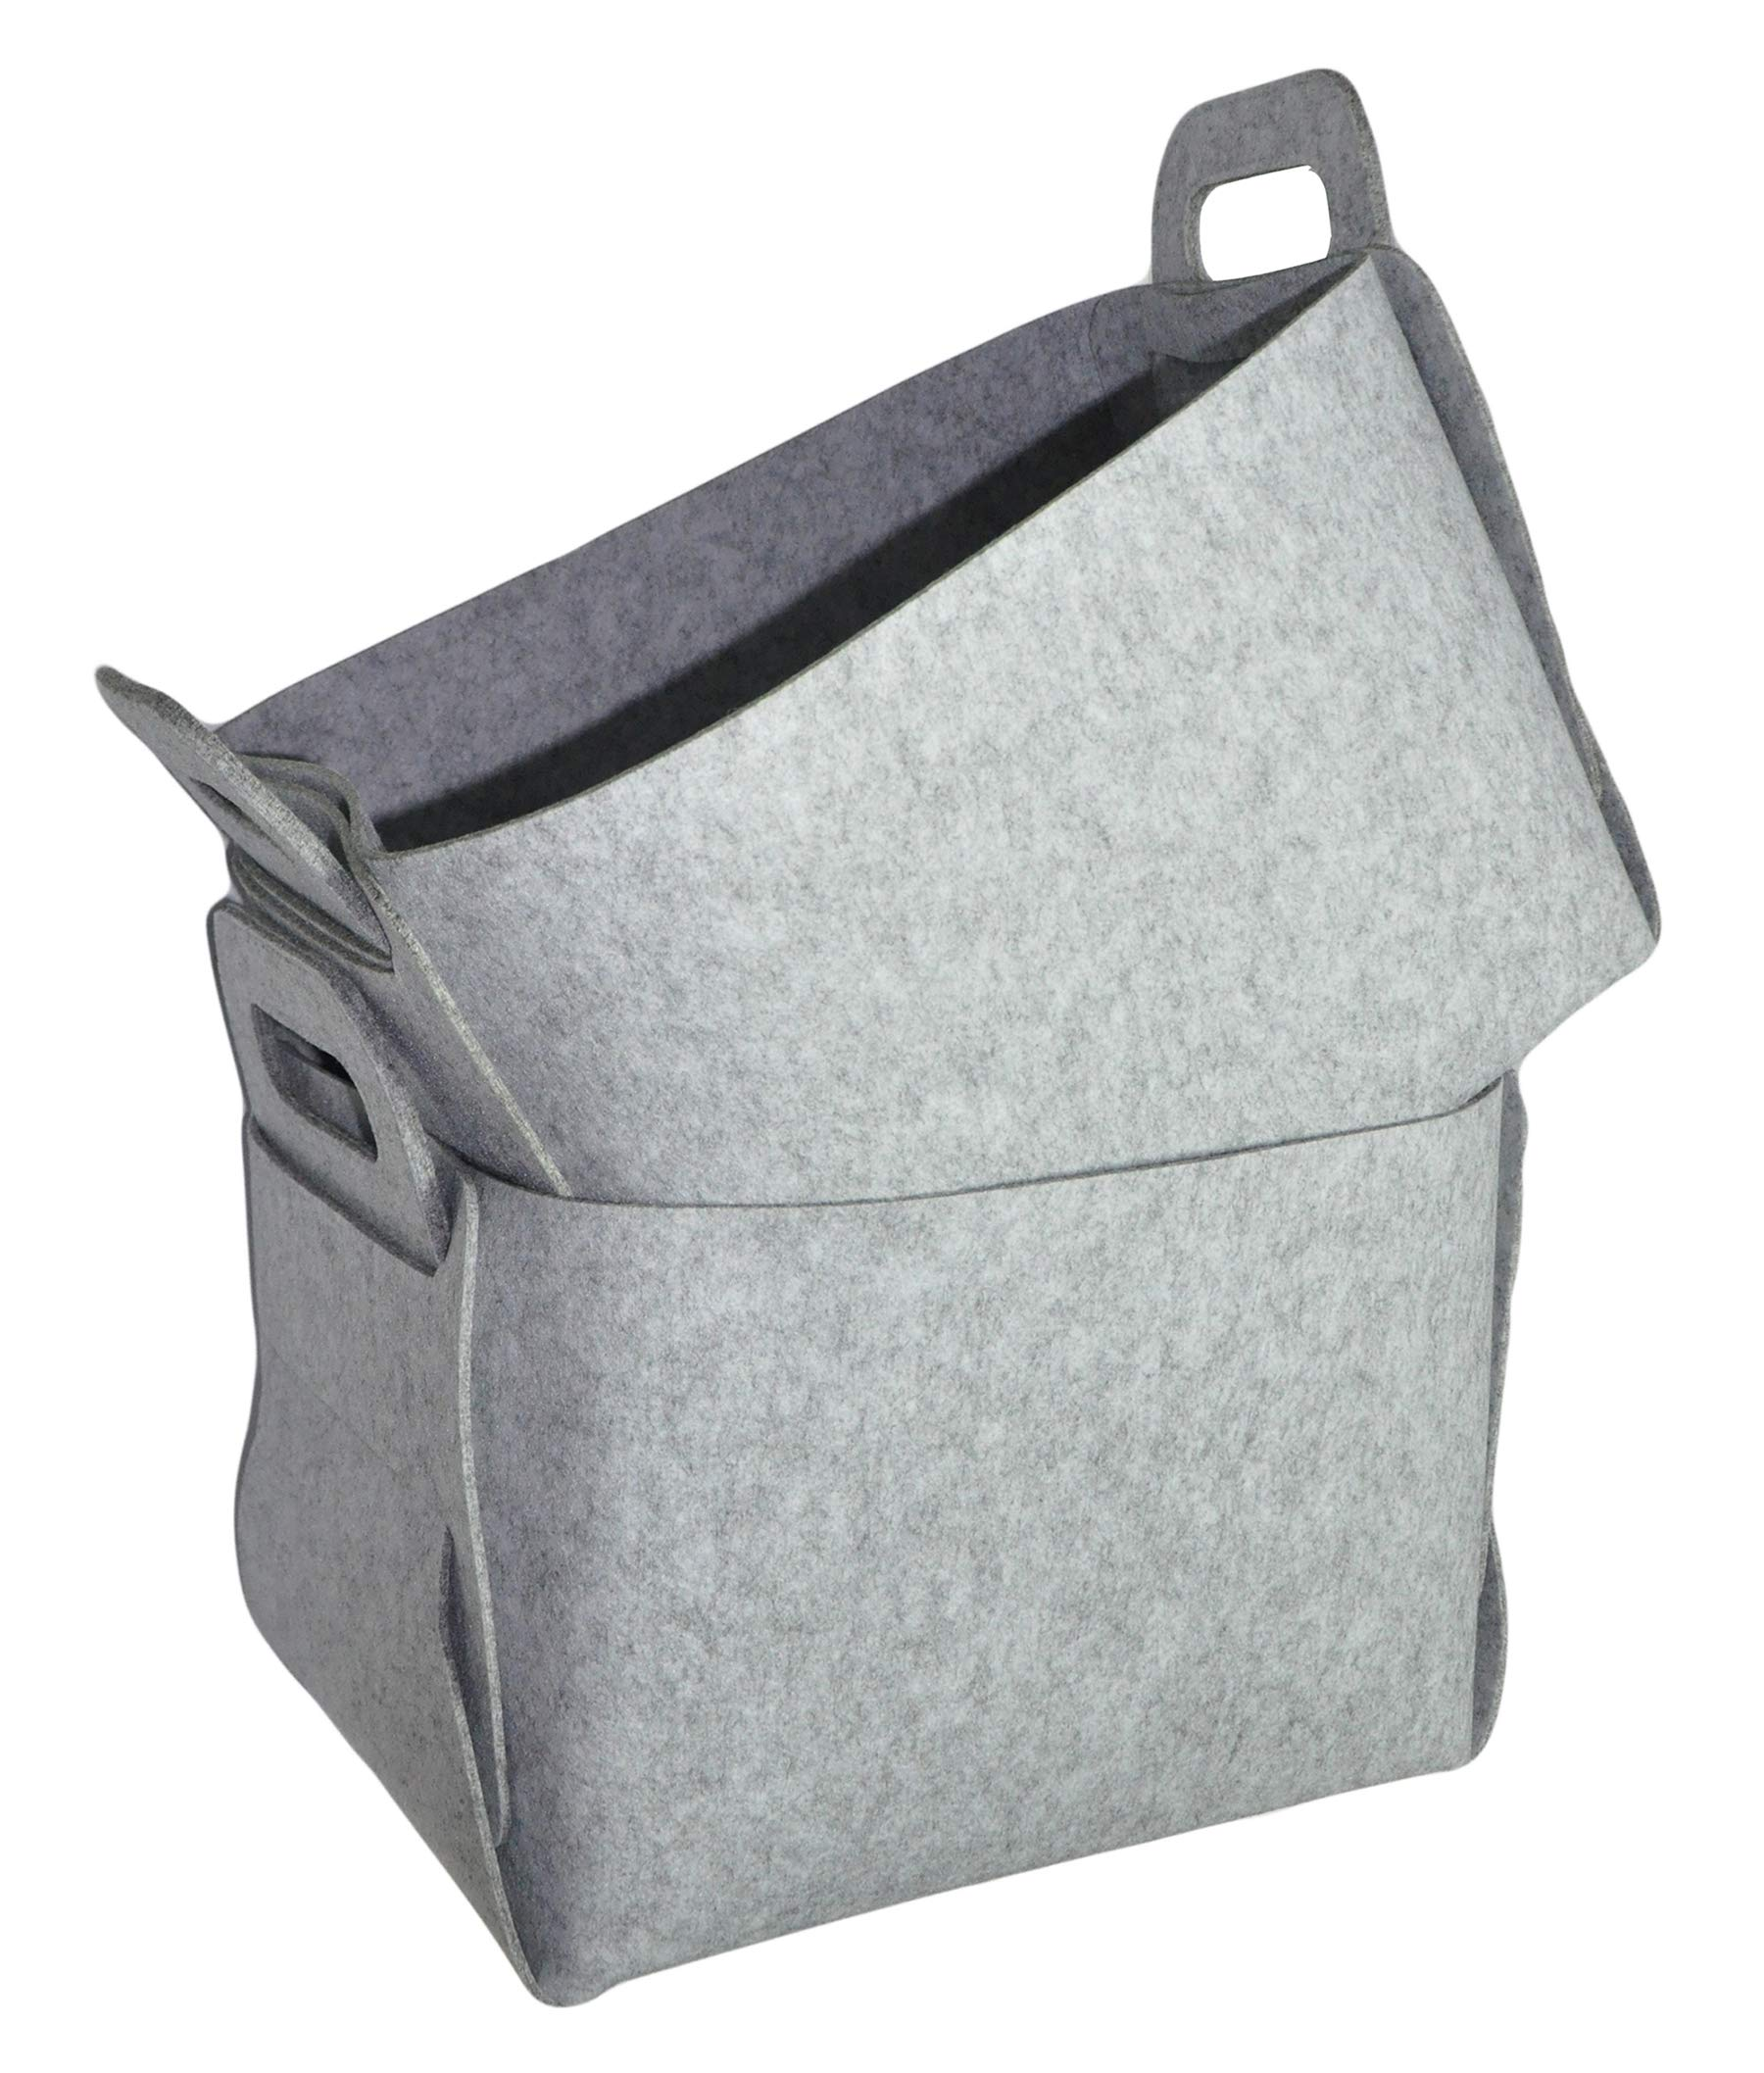 Estorager Collapsible Storage Baskets Magazine Holders, Decorative Folding Home Book Organizers Box Cubes Light Gray Pack of 2